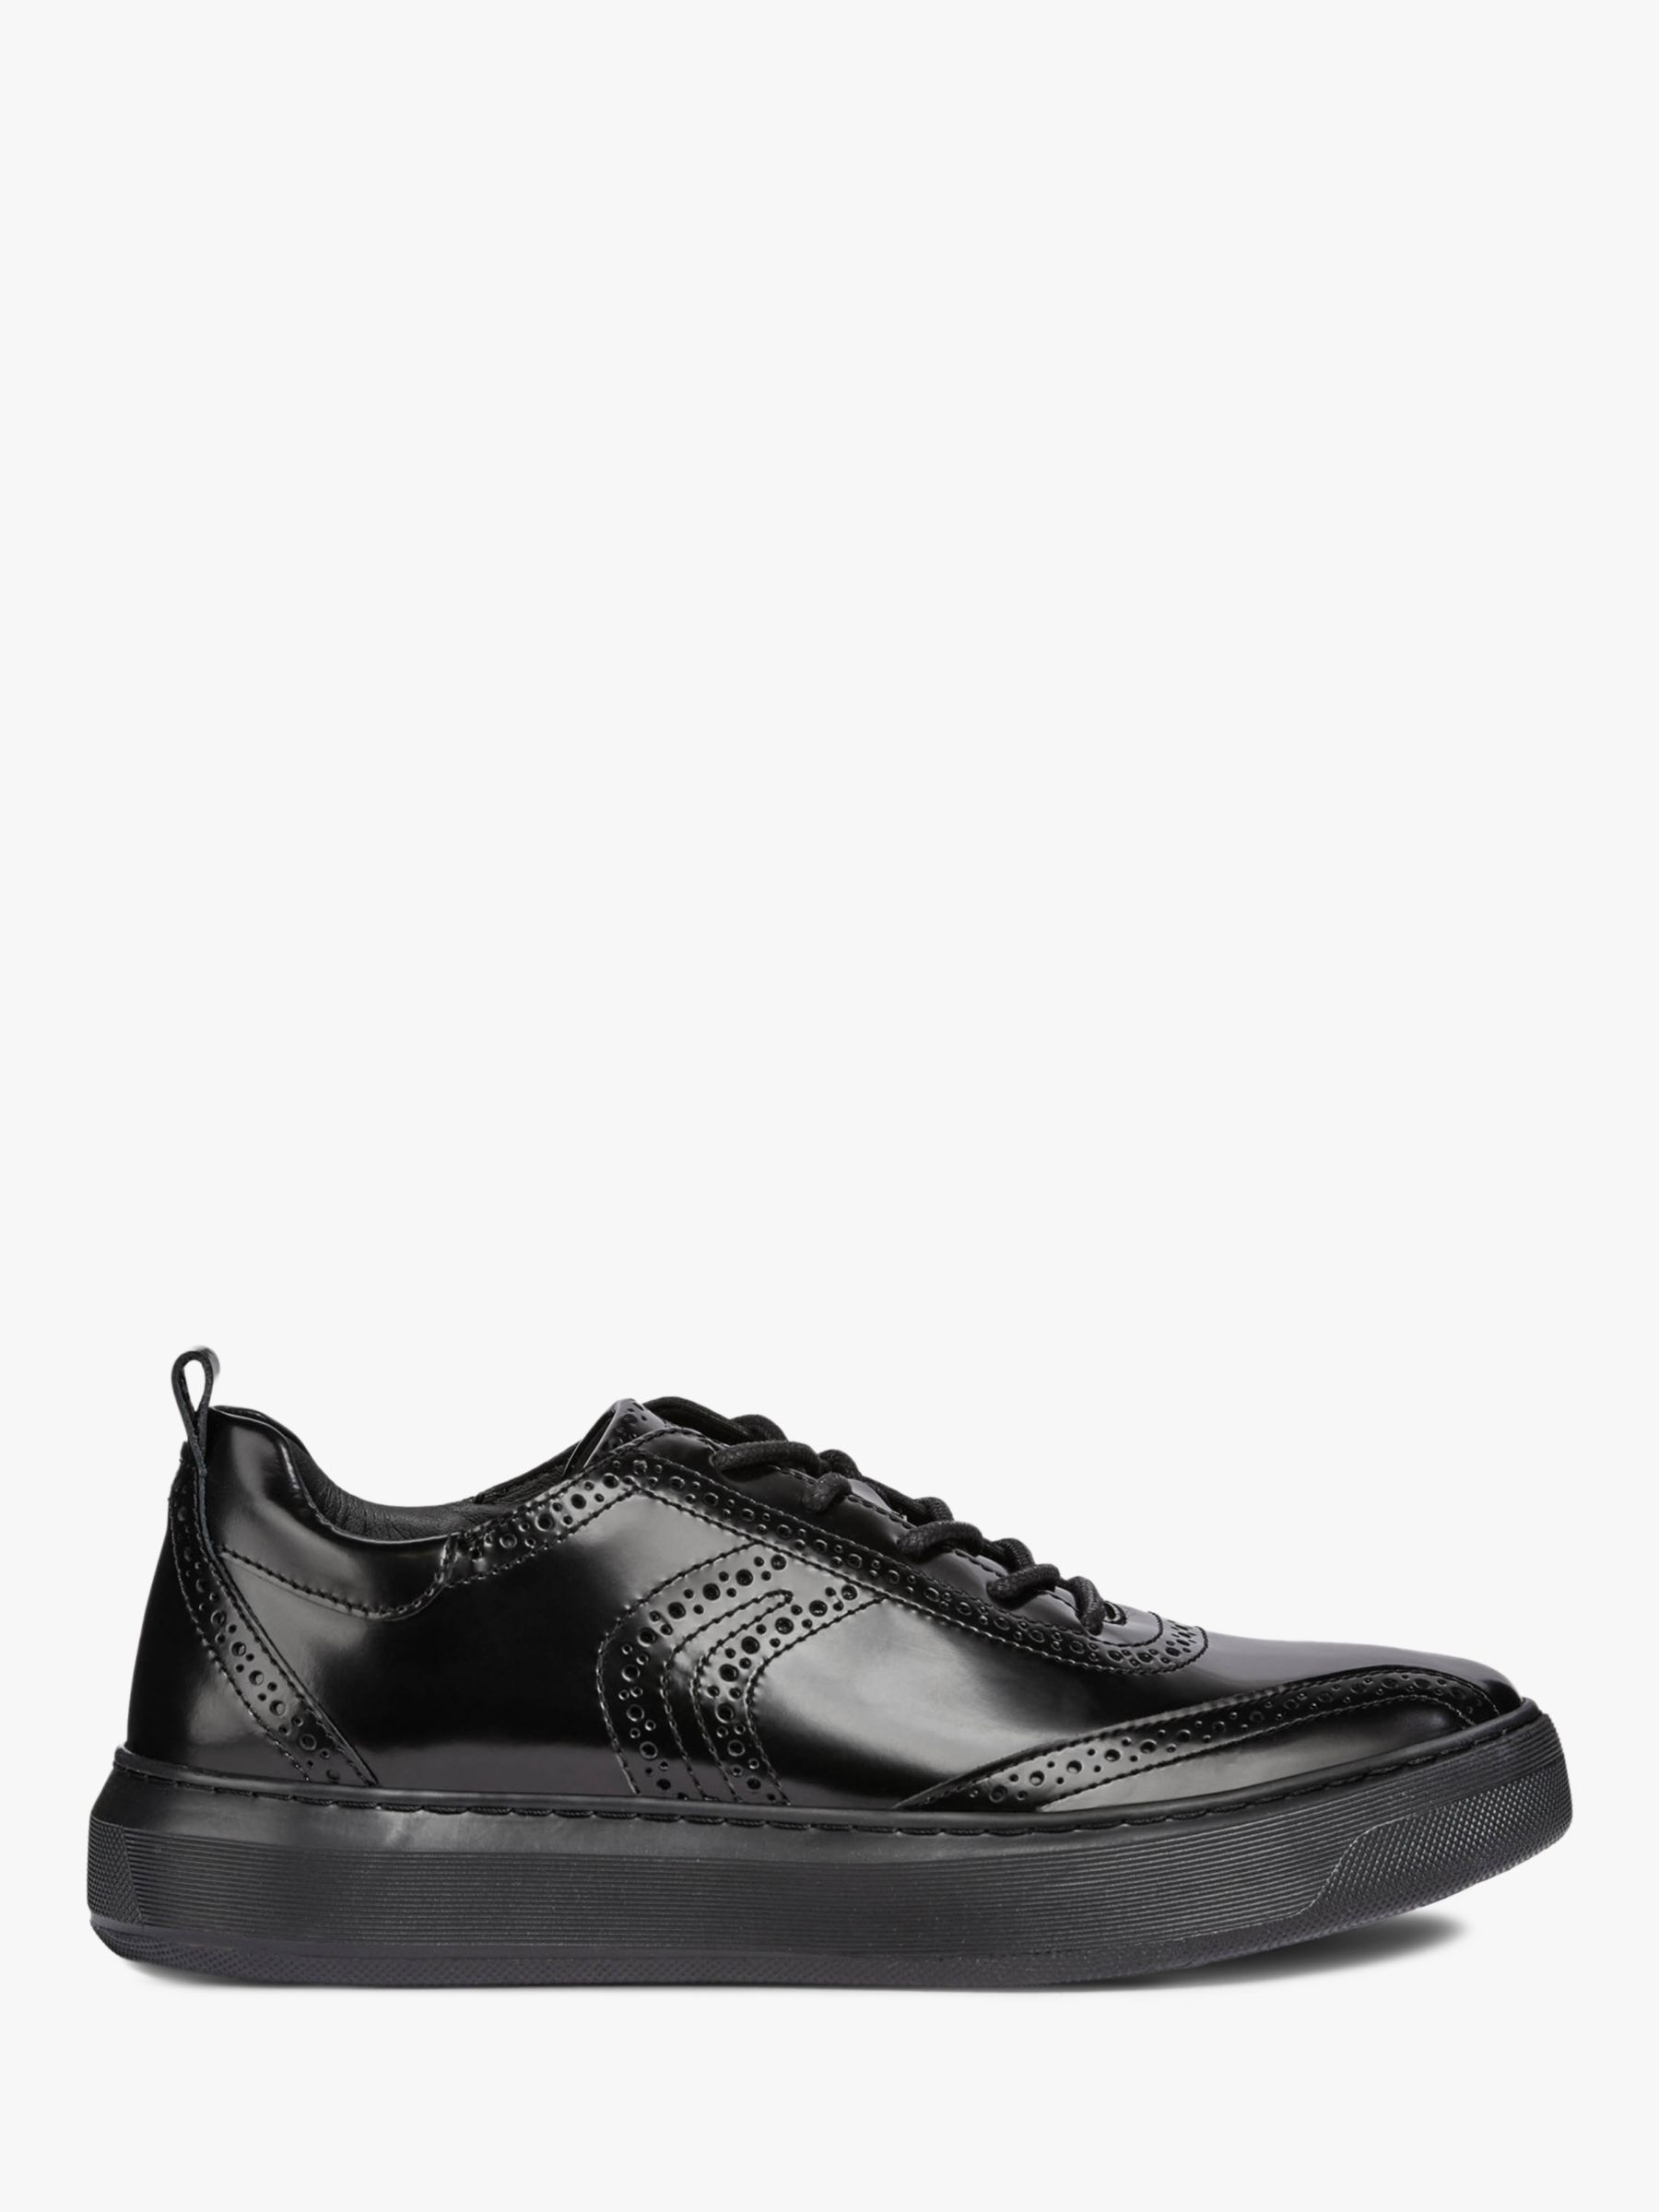 739742a705d Geox Deiven Breathable Trainers, Black at John Lewis & Partners